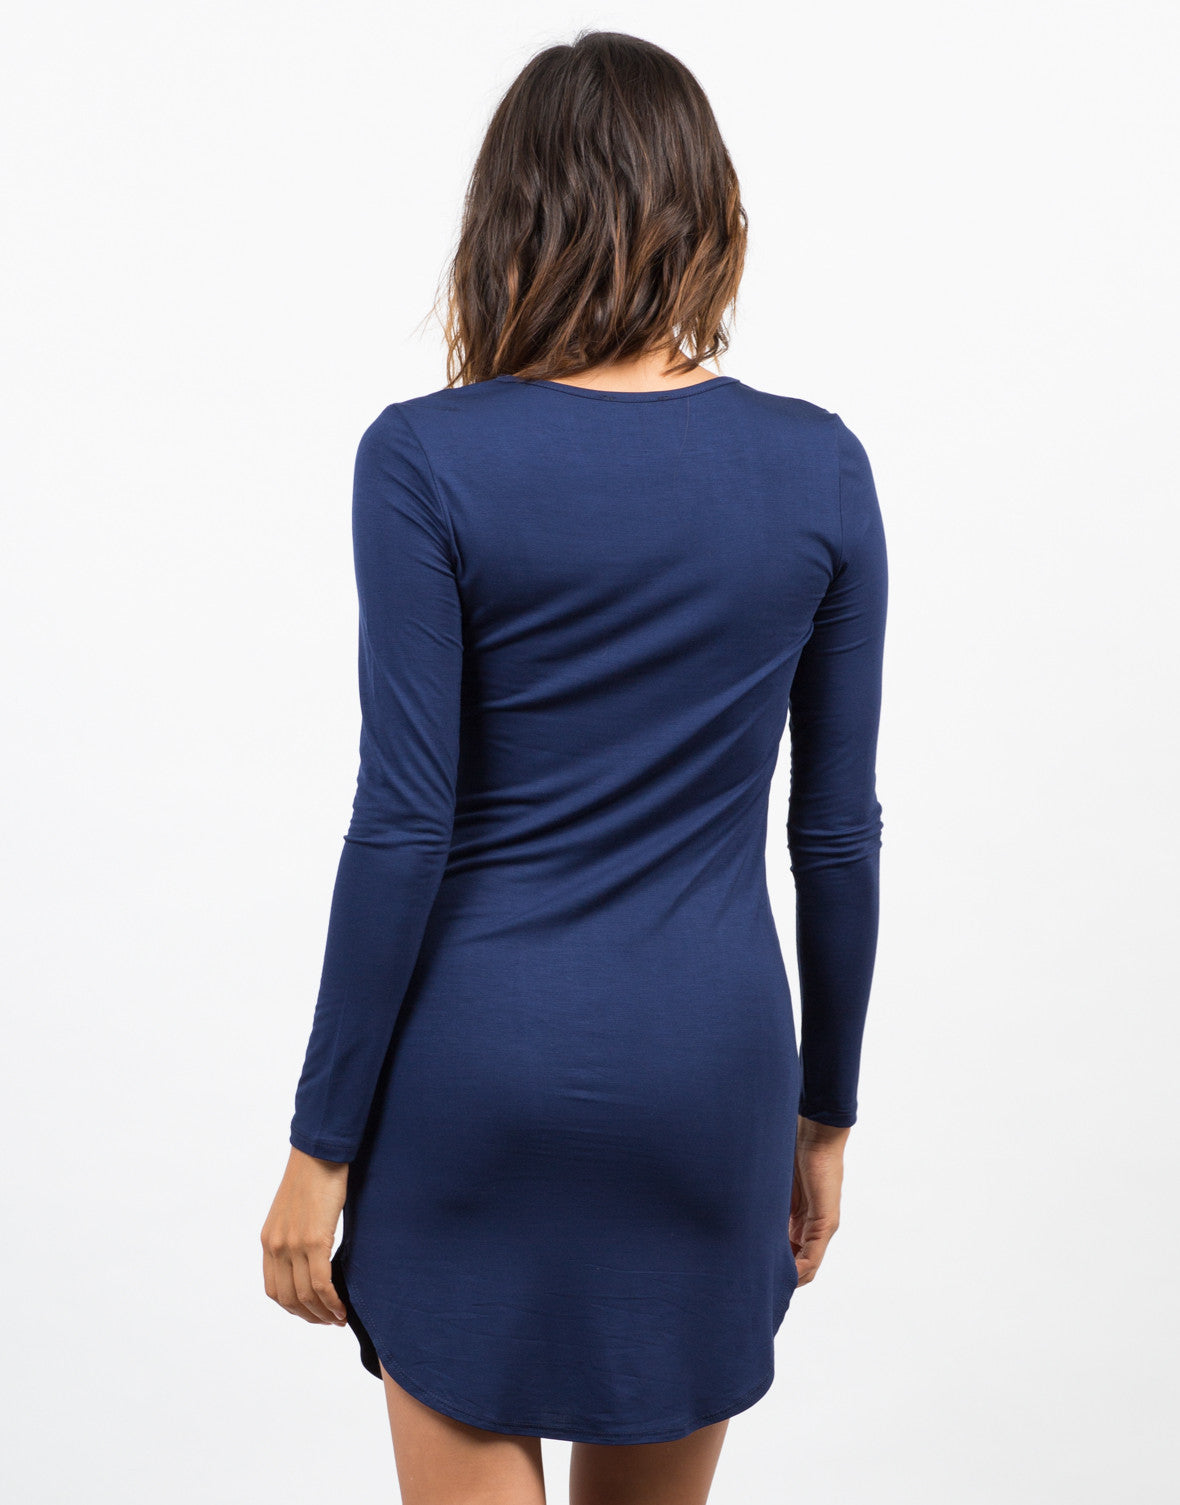 Back View of Long Sleeve T-Shirt Dress